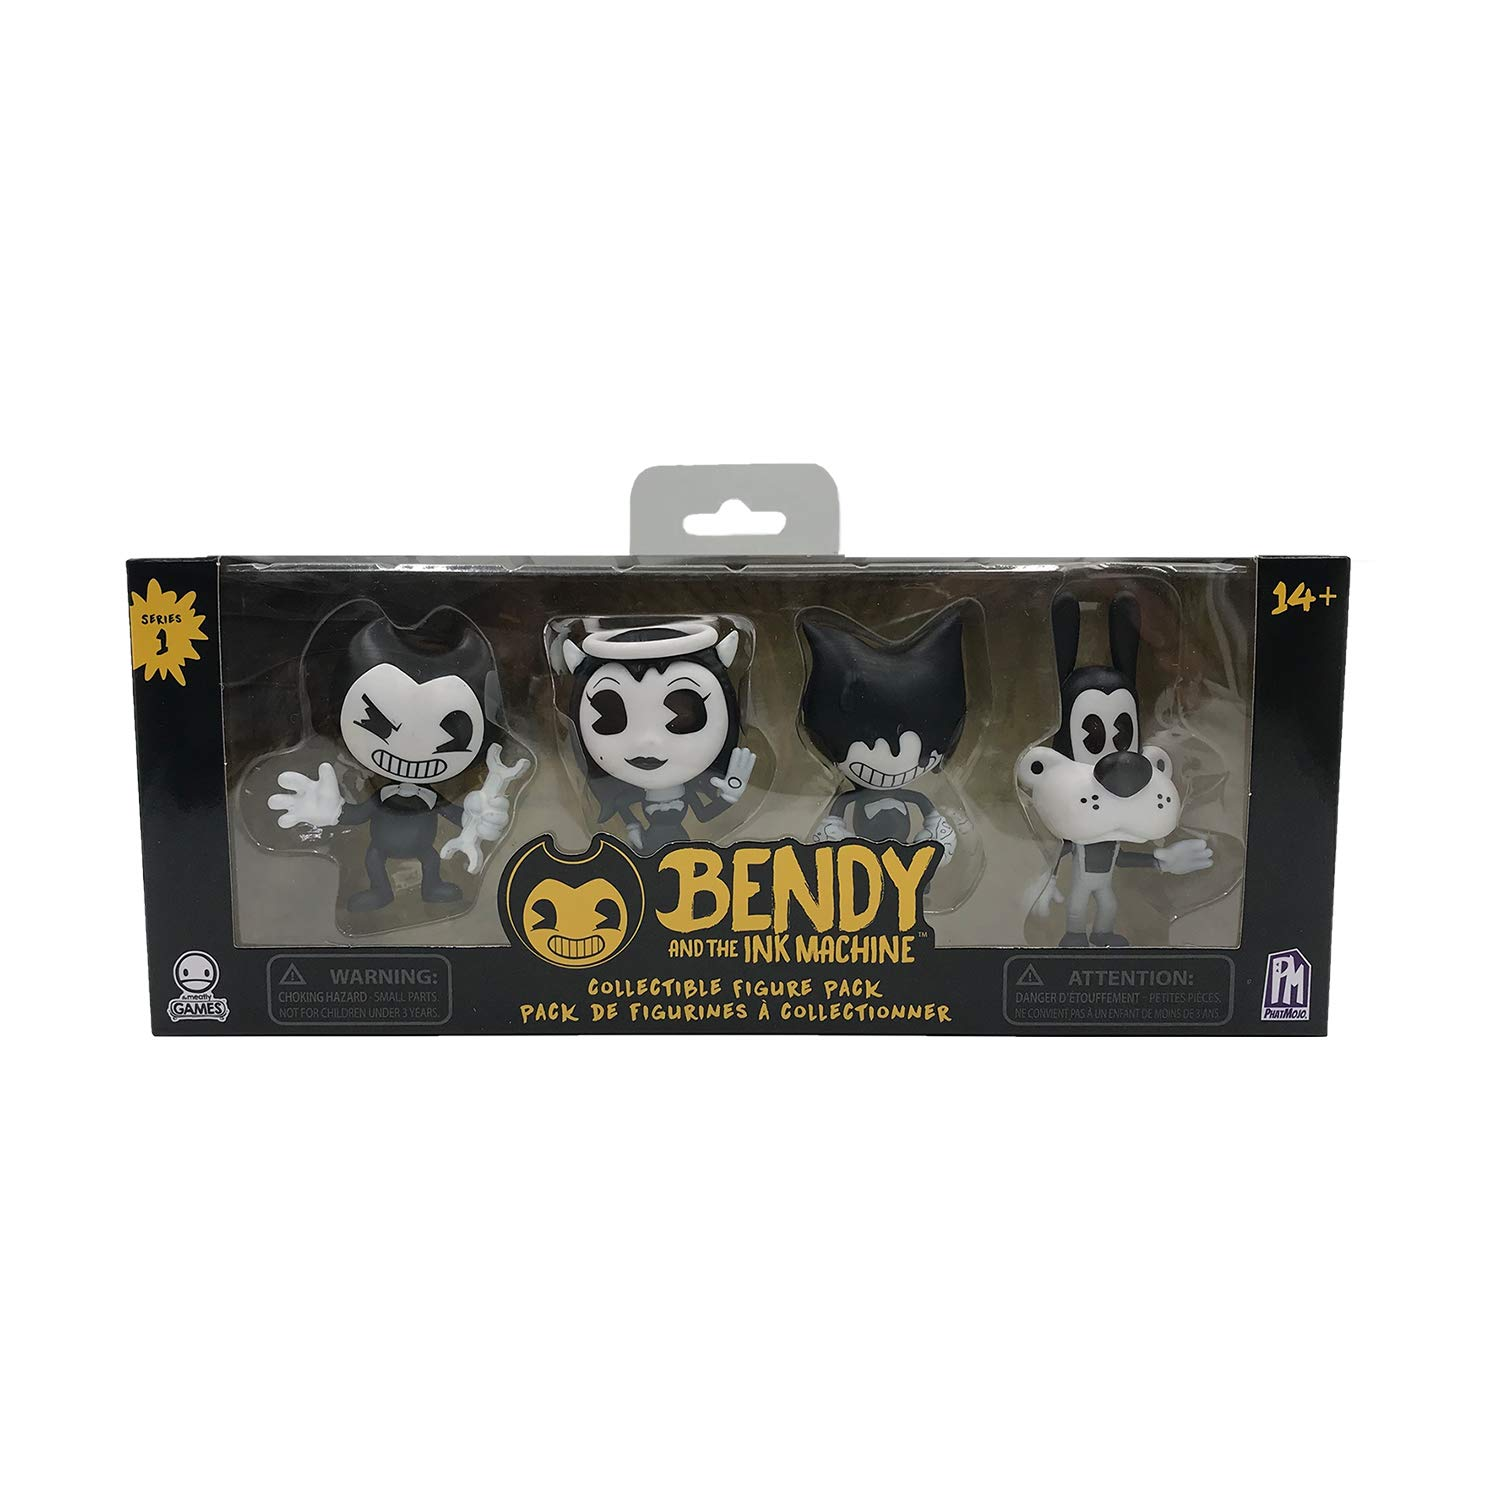 Bendy and The Ink Machine Collectible Figure Pack